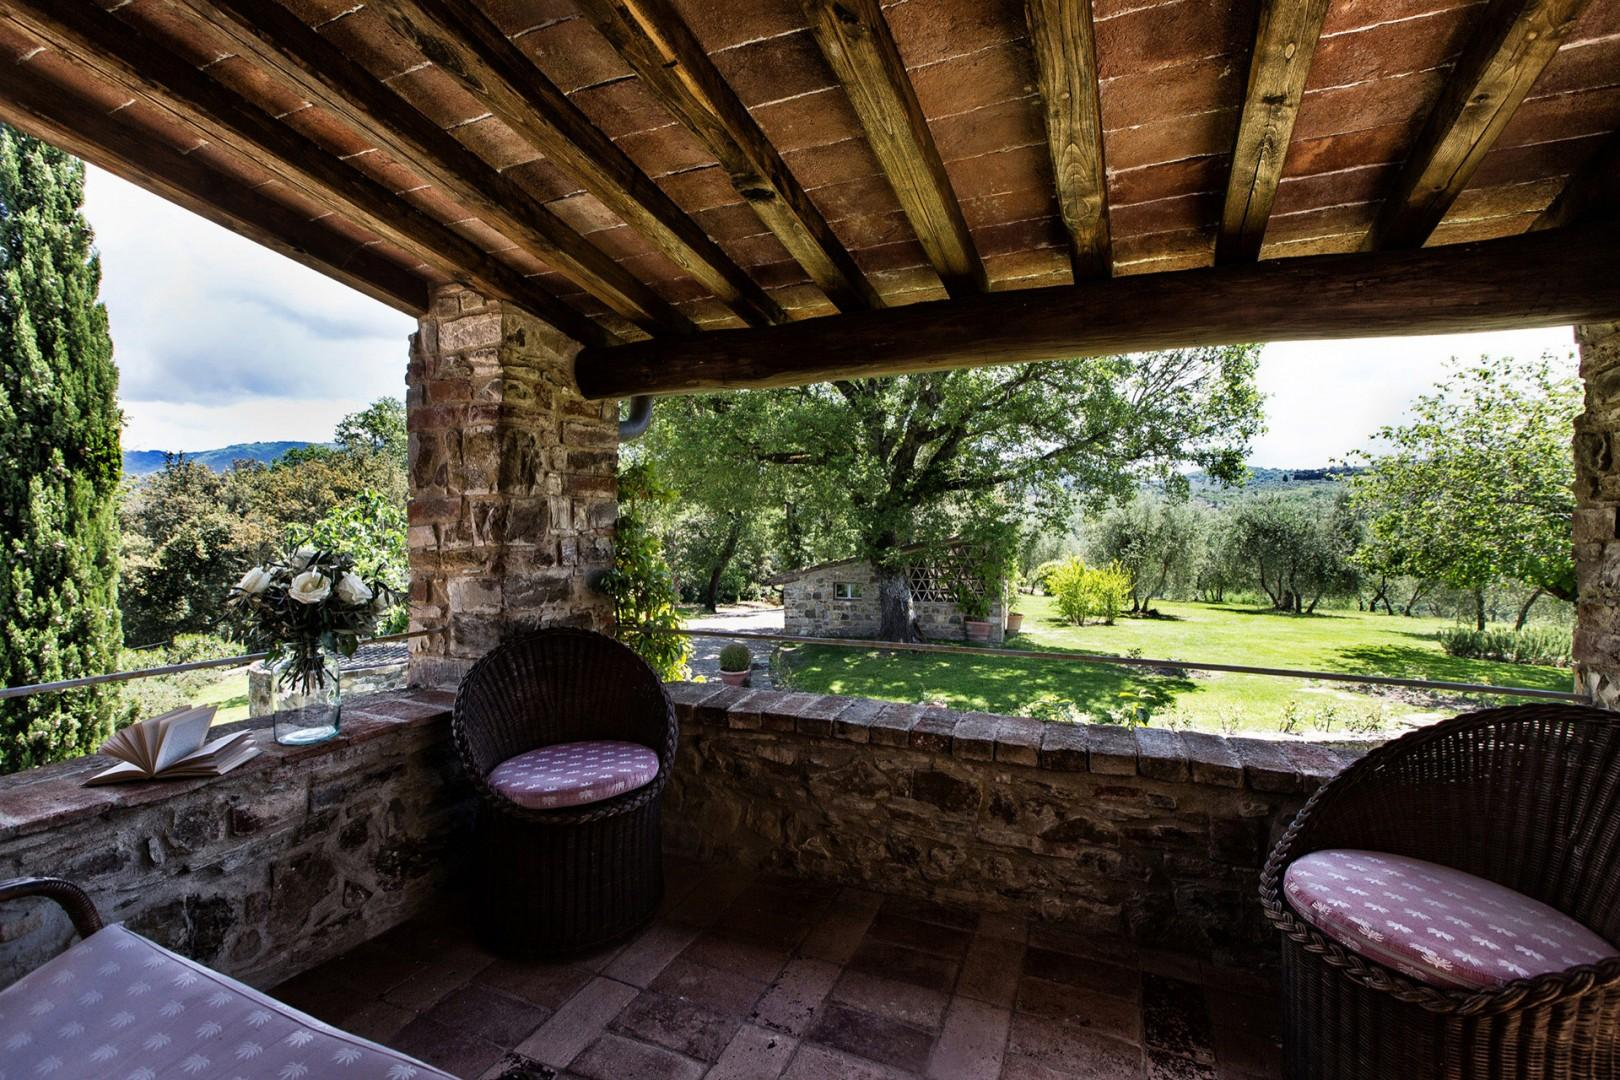 The cottage has its own terrace with patio furniture and nice views.